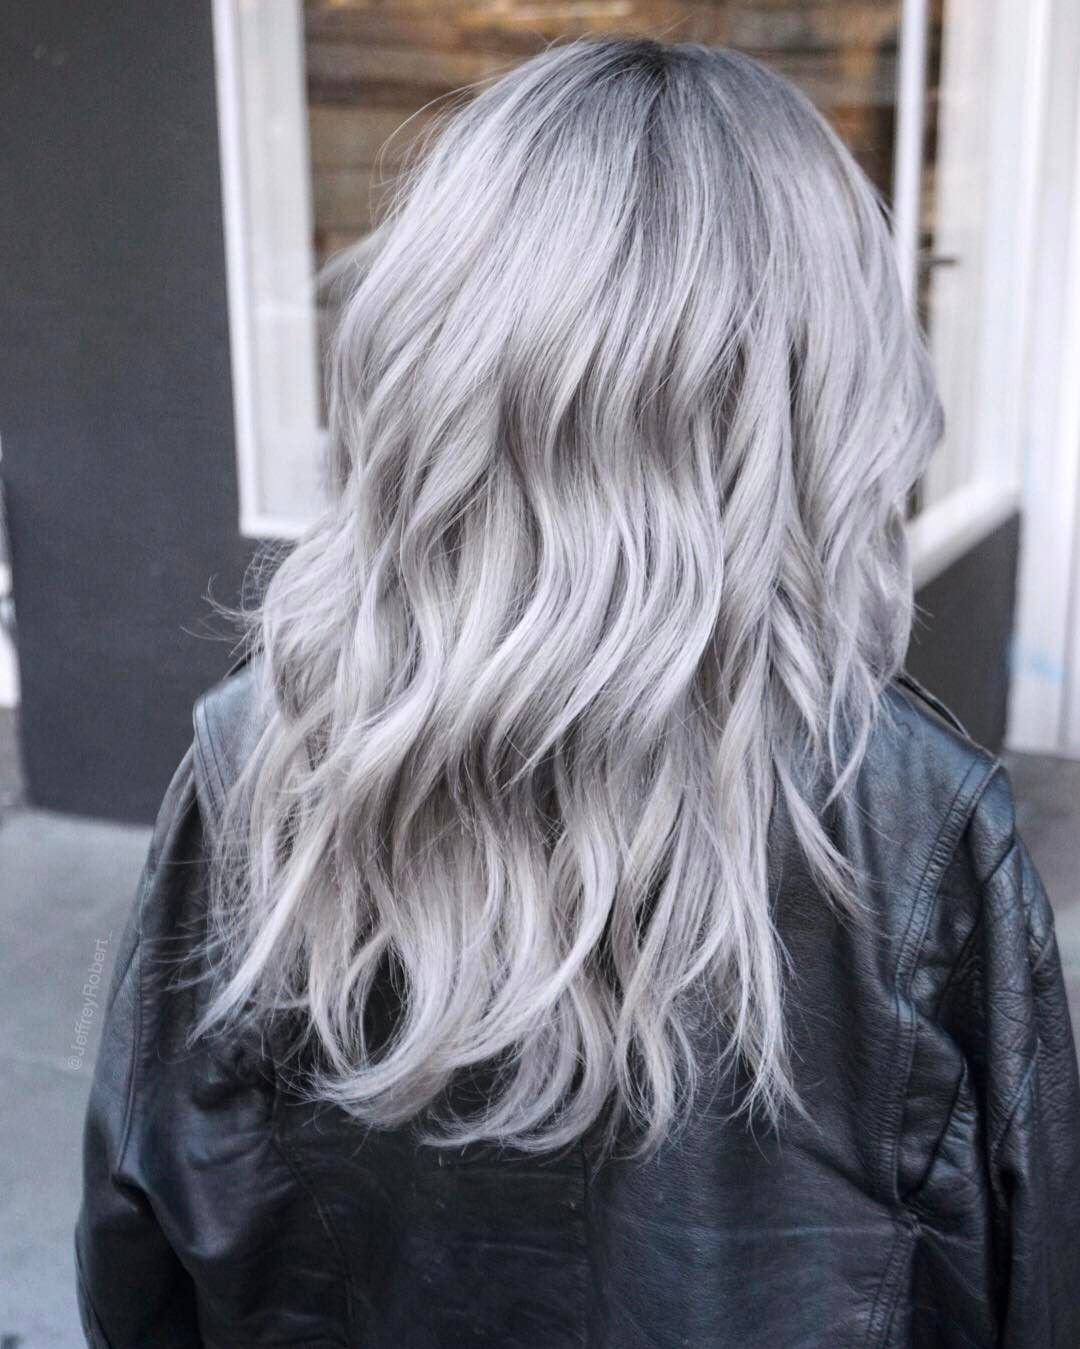 New Icy Silver Hair Transformation Is The 2019'S Coolest Trend Ideas With Pictures